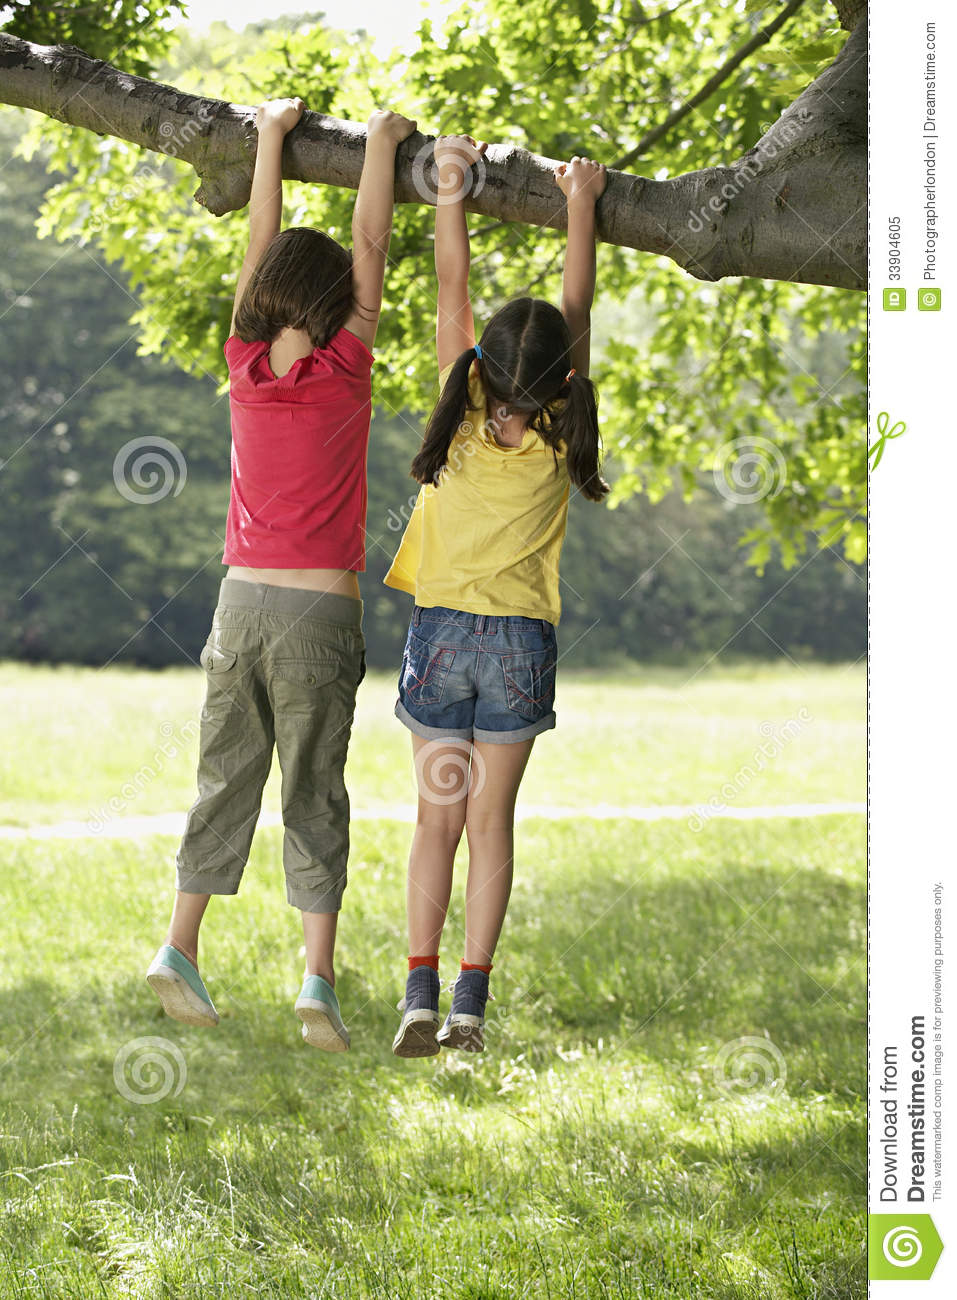 Hanging-Girl Girls Hanging From Tree Branch Royalty Free Stock Photo ...